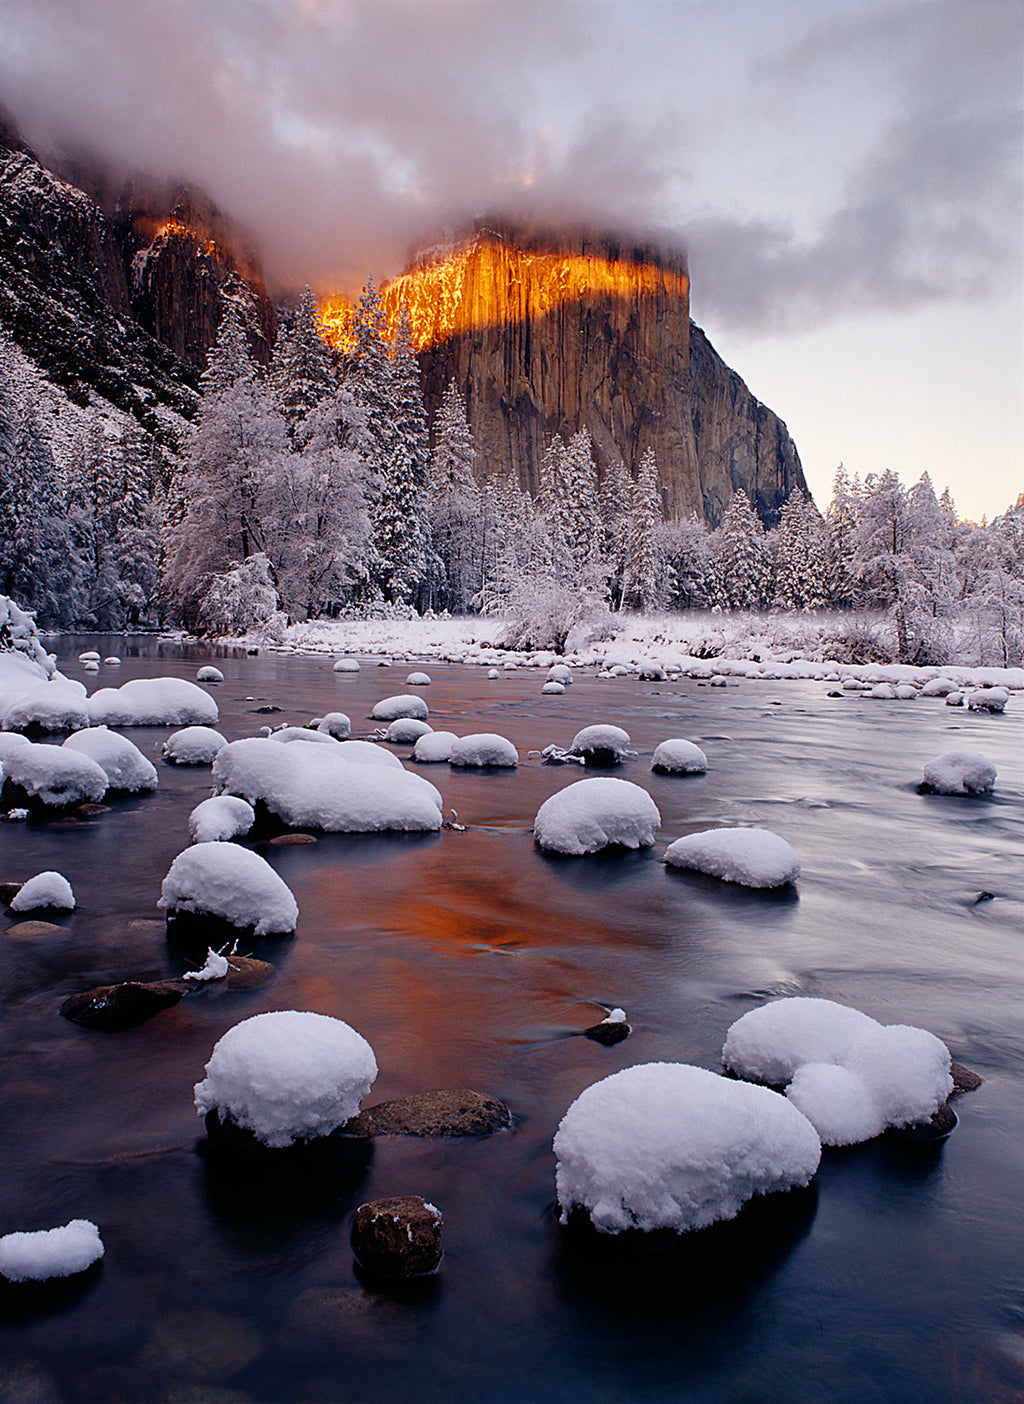 Band of Light on El Capitan, Yosemite National Park